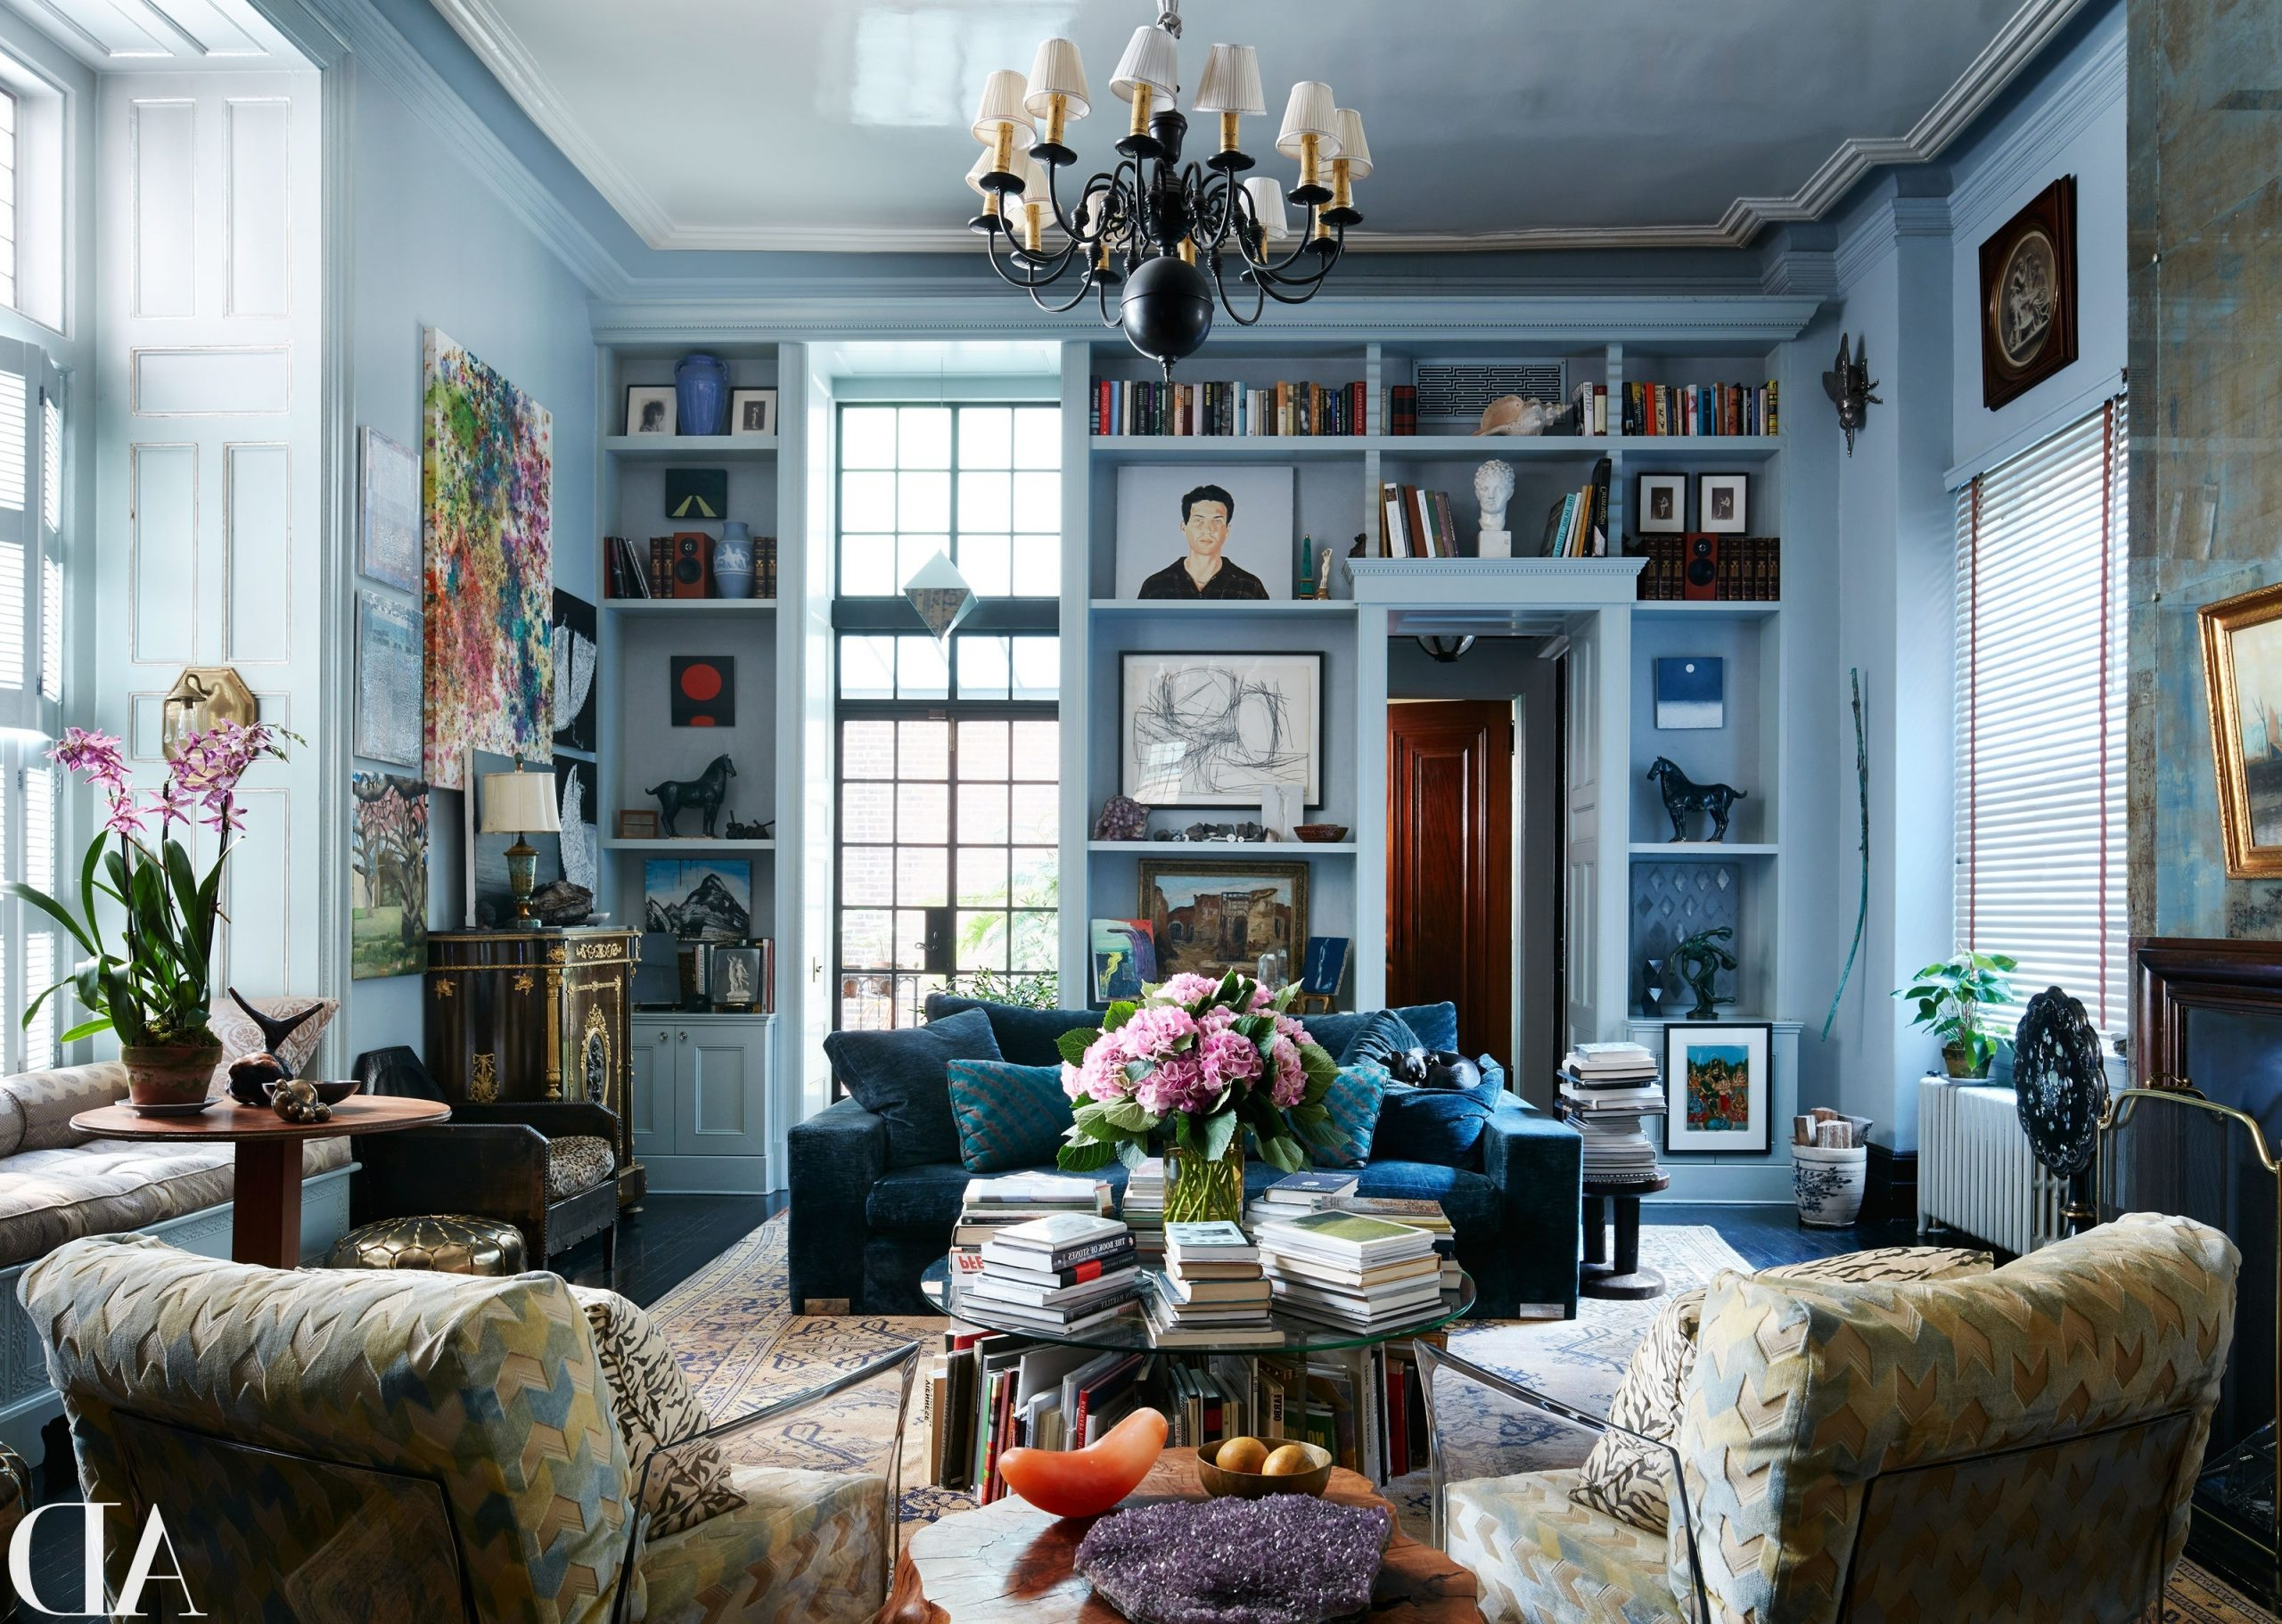 44 Of The Best Living Rooms Of 2016 | Architectural Digest 10+ Architectural Digest Small Living Room Ideas